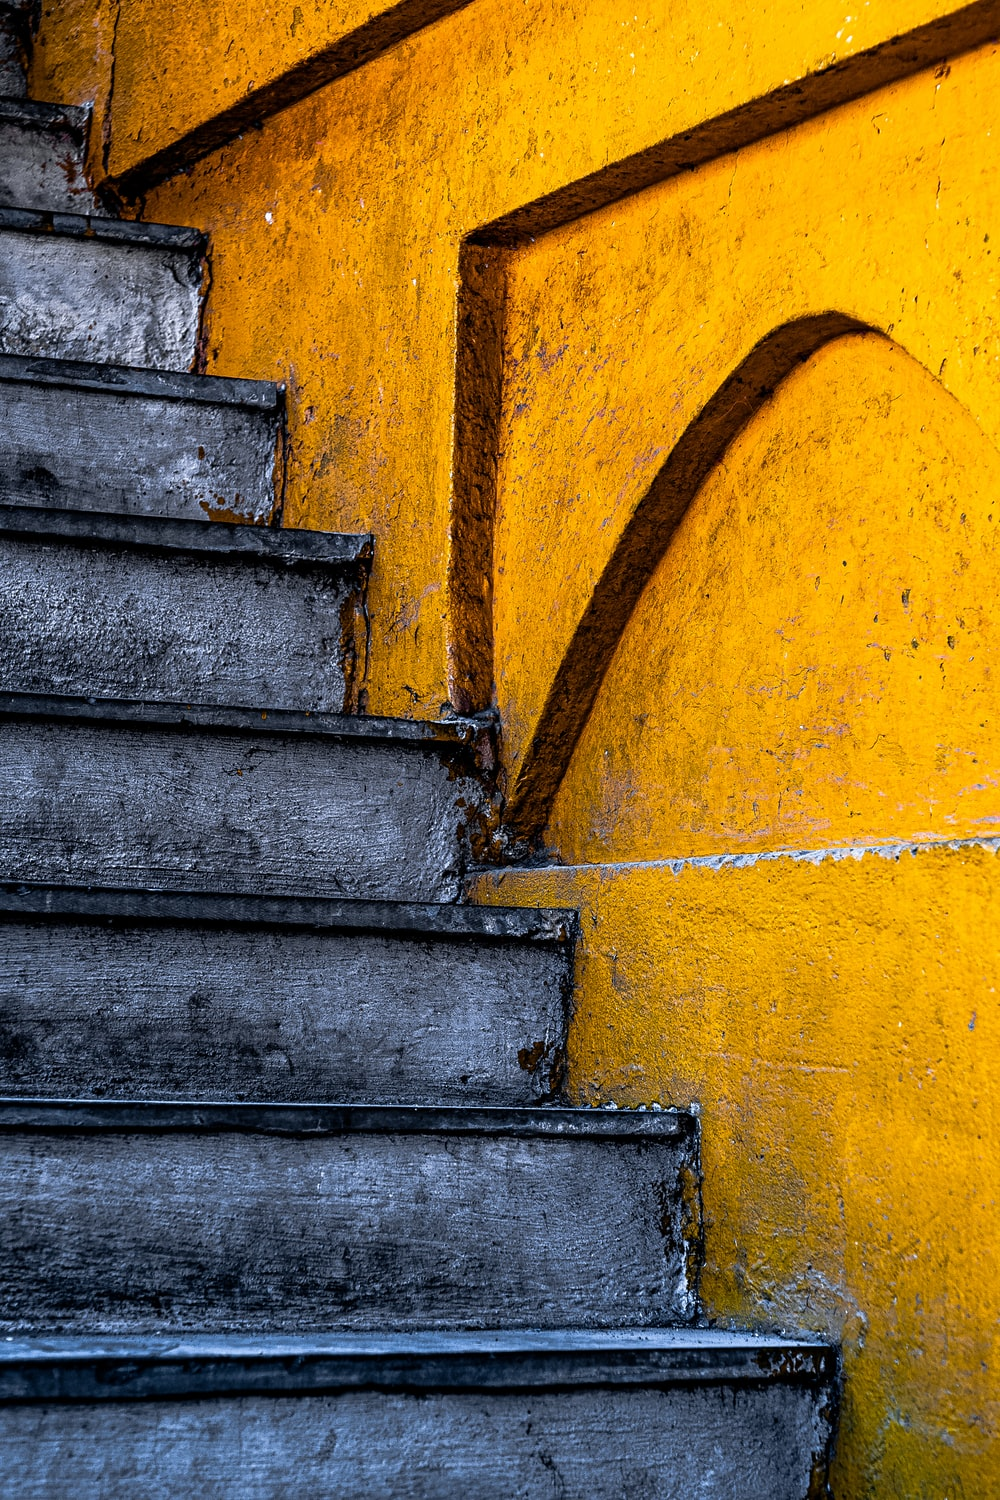 blue and yellow concrete staircase